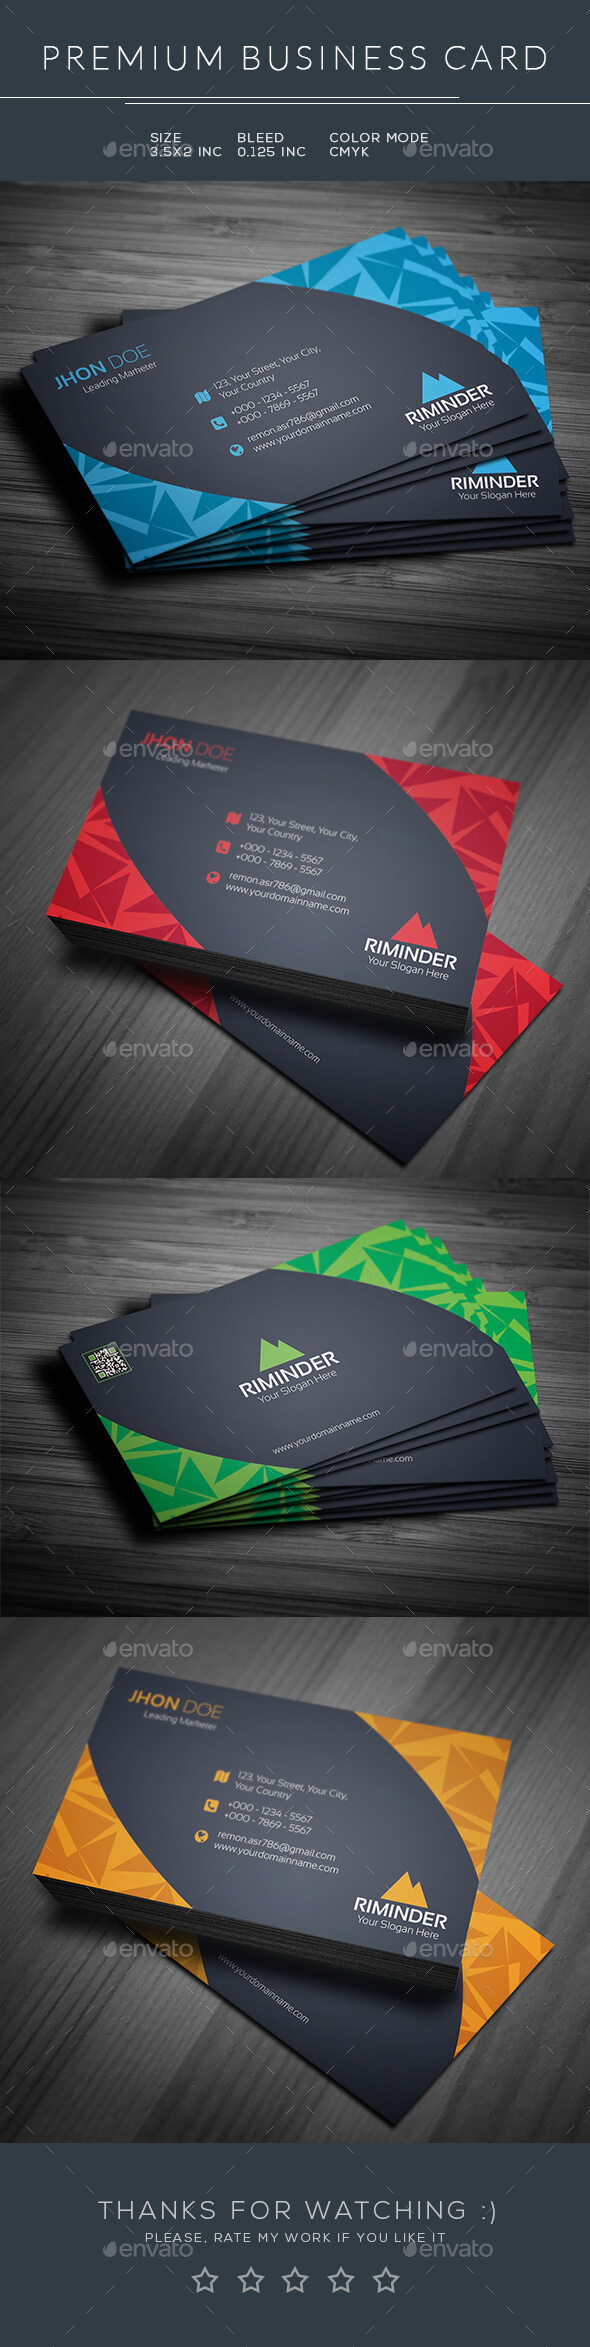 Abstract Business Card - Business Cards Print Templates